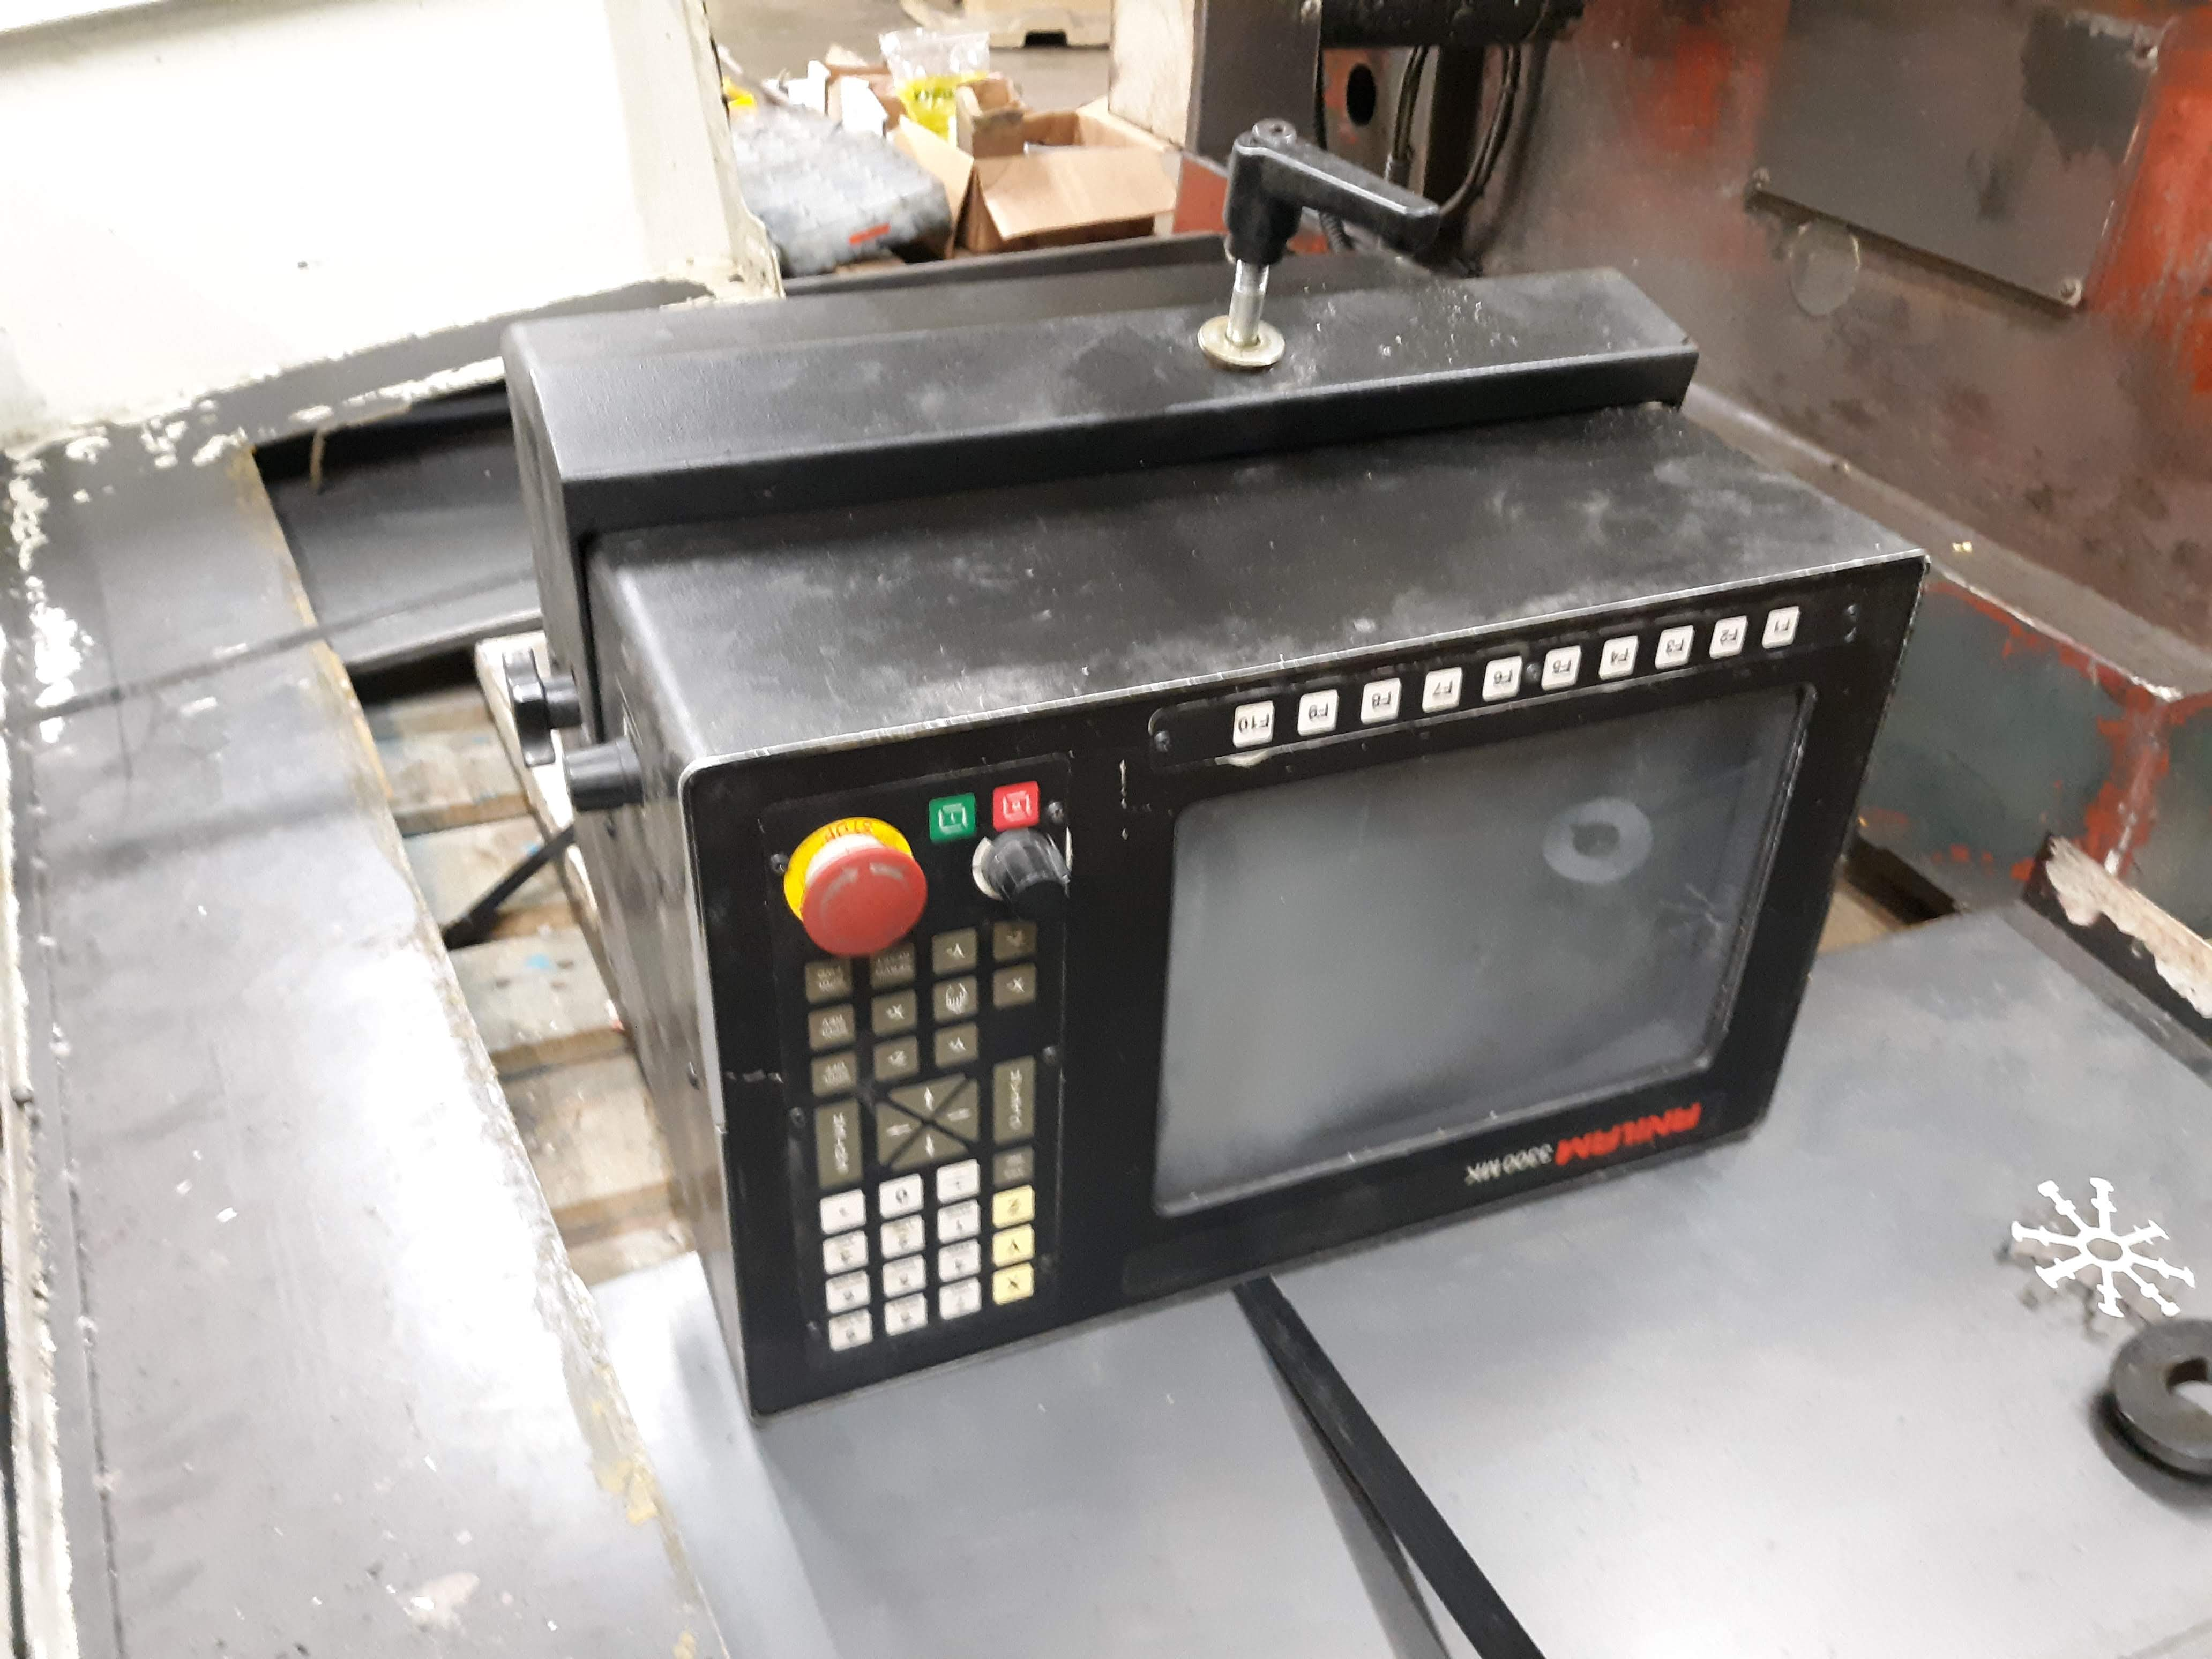 FRYER CNC MILLING MACHINE MODEL-MB-14 S#14247 54 X 16 TABLE ANILAM 3300 MK DRO (LOCATED AT: 432 - Image 2 of 8